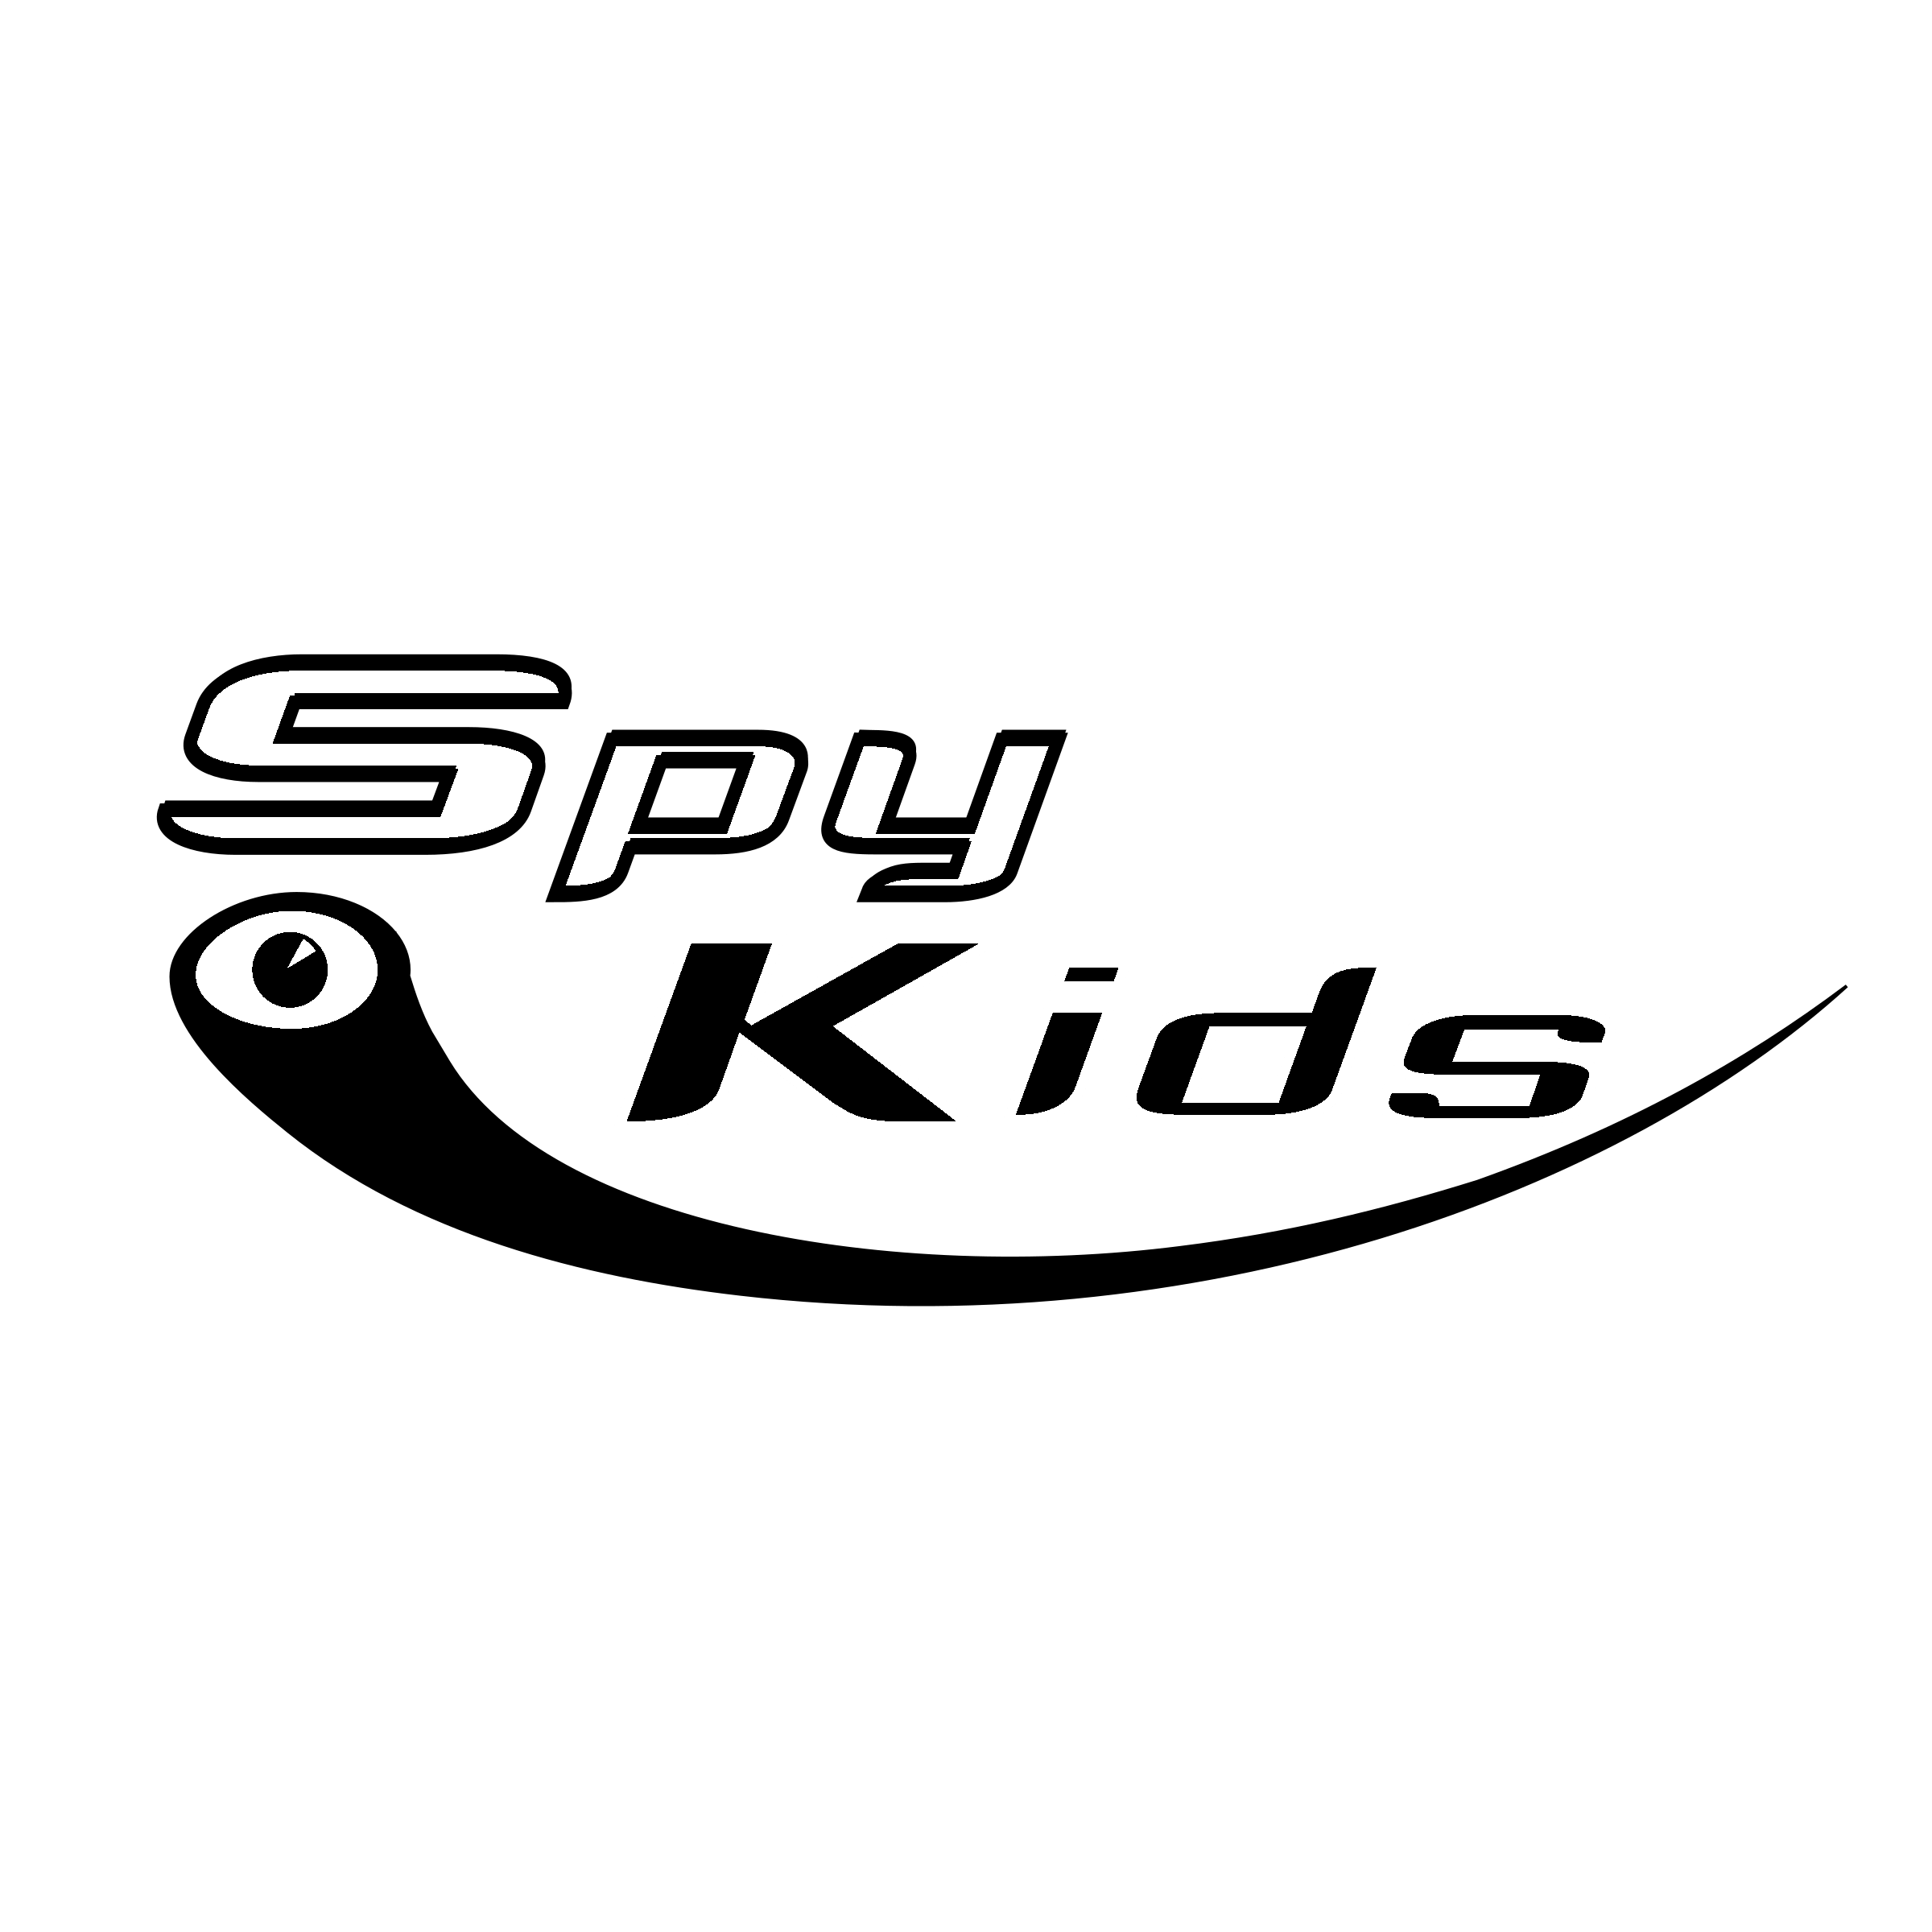 spy kids logo png transparent svg vector freebie supply spy kids logo png transparent svg